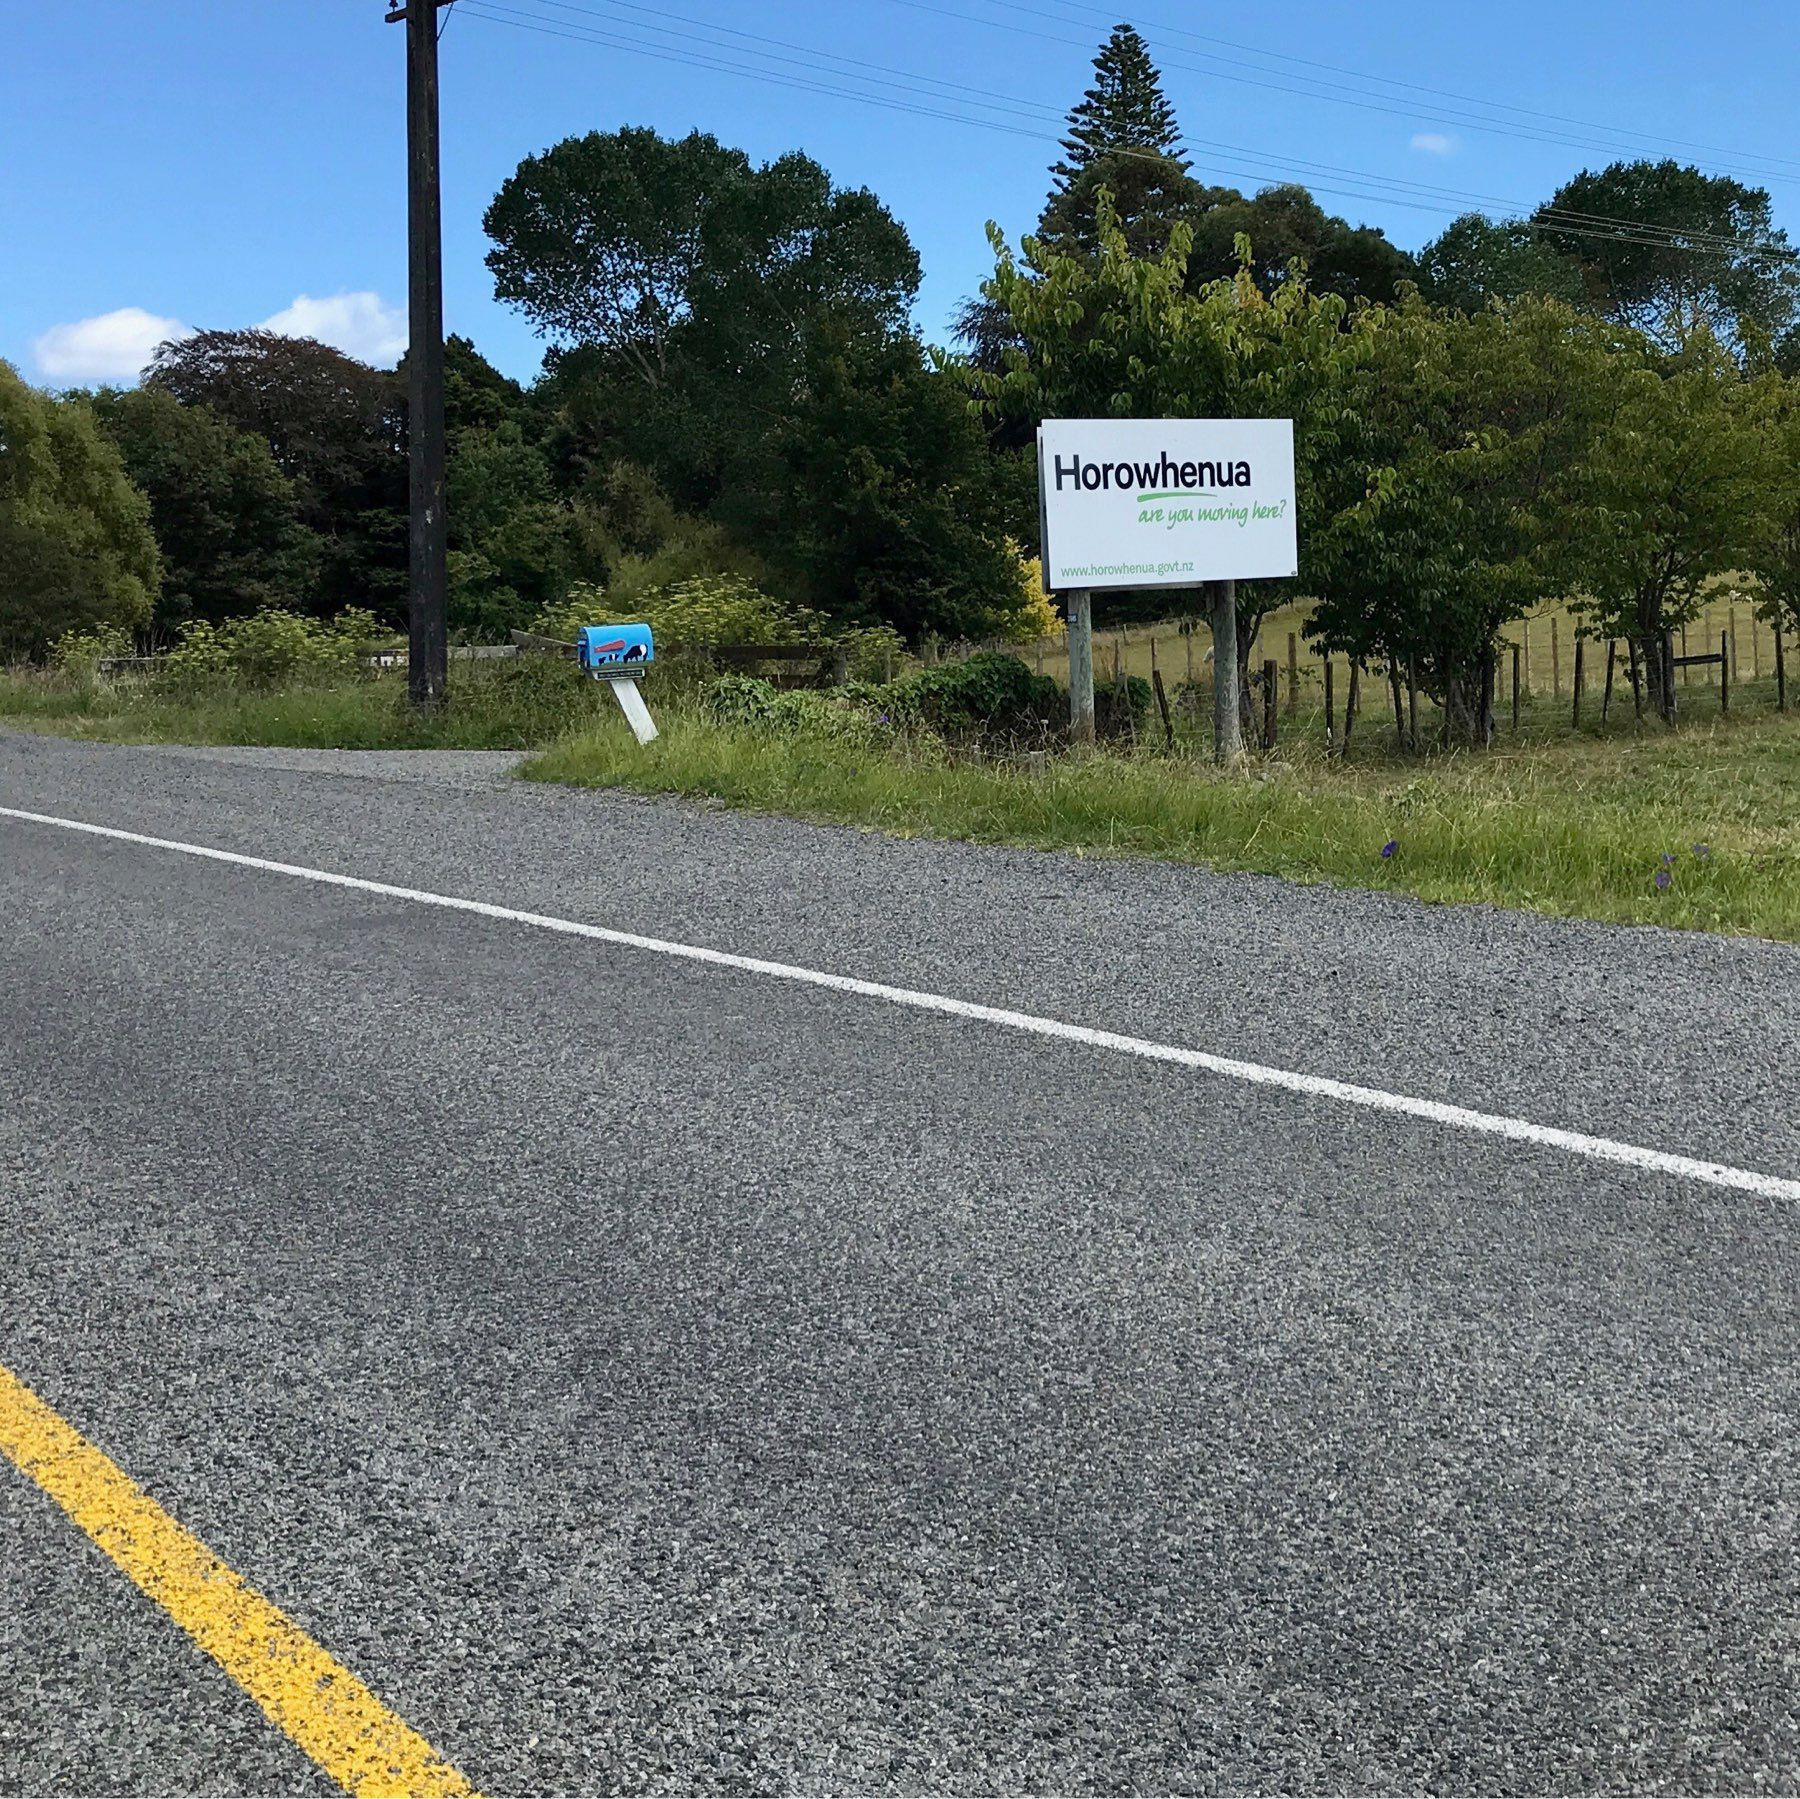 A sign that says : Horowhenua are you moving here.